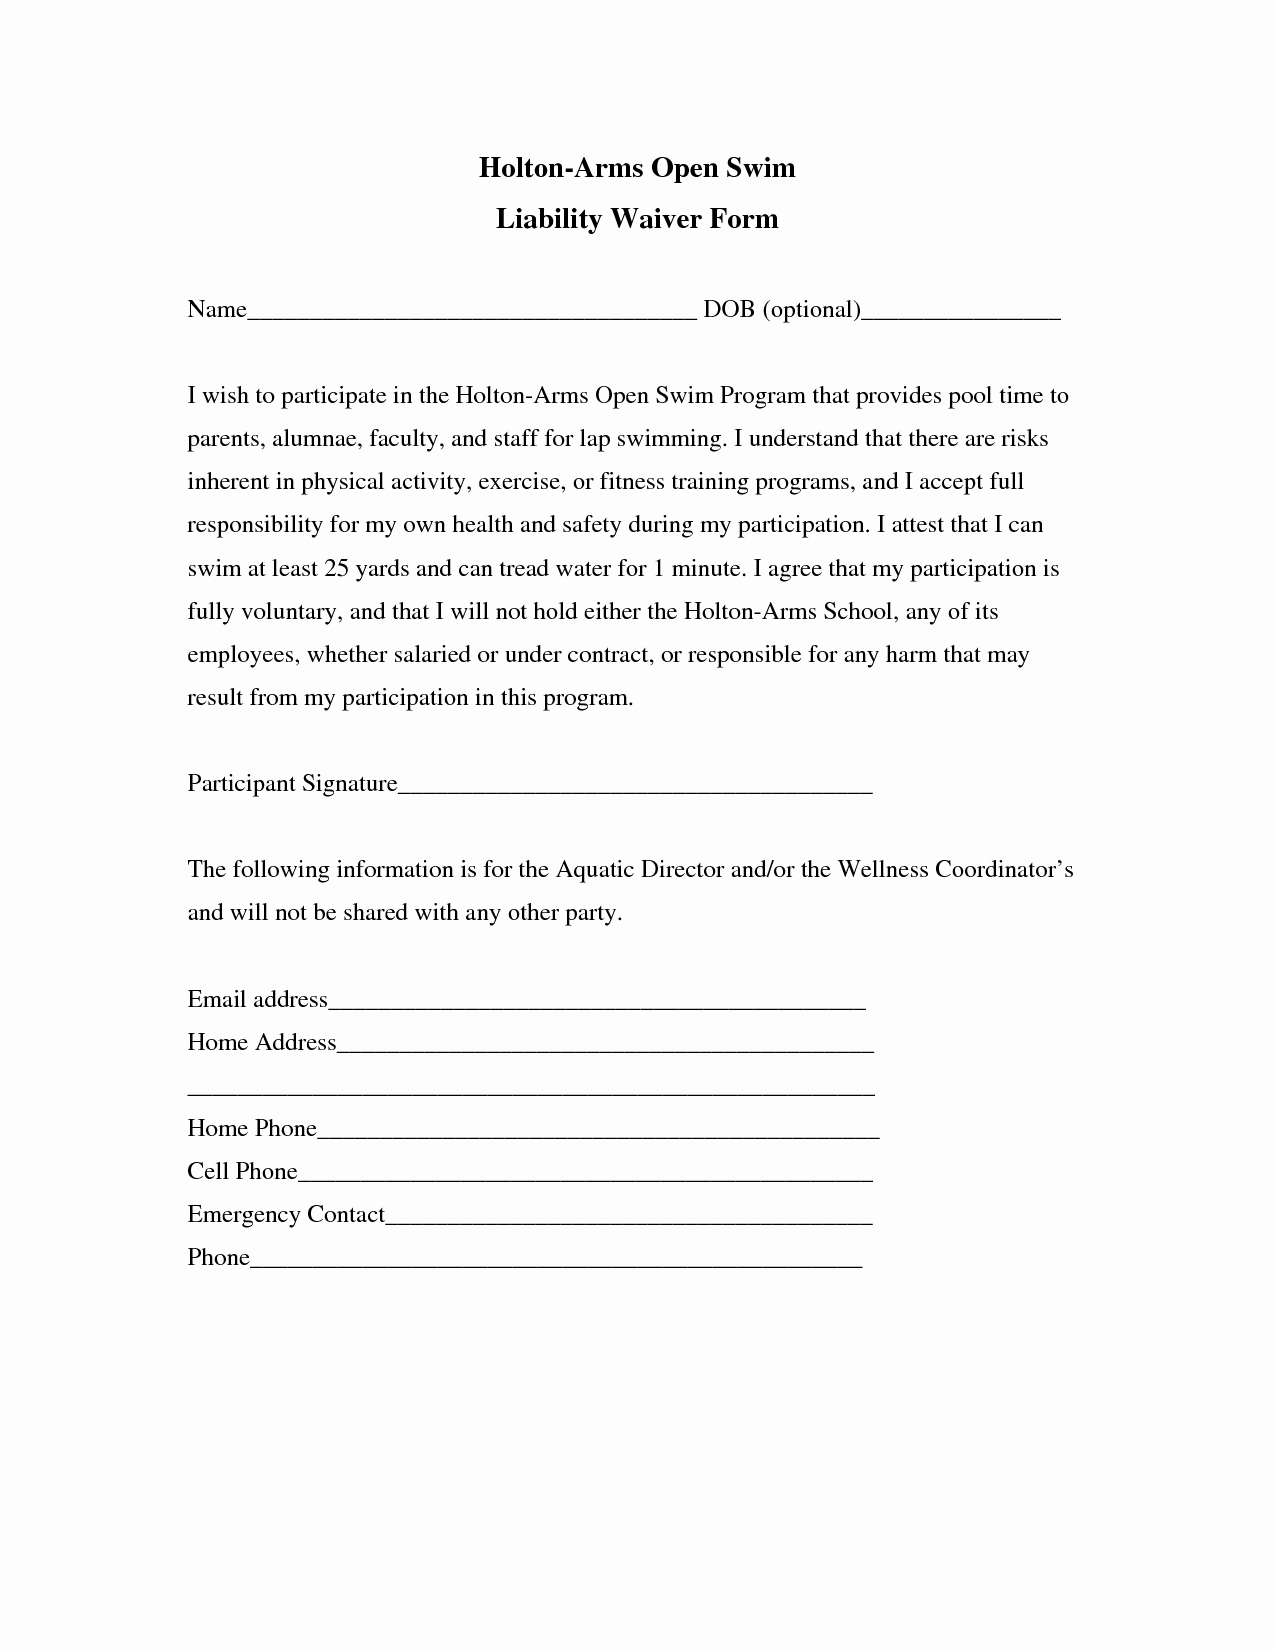 Waiver Liability form Template Portablegasgrillweber